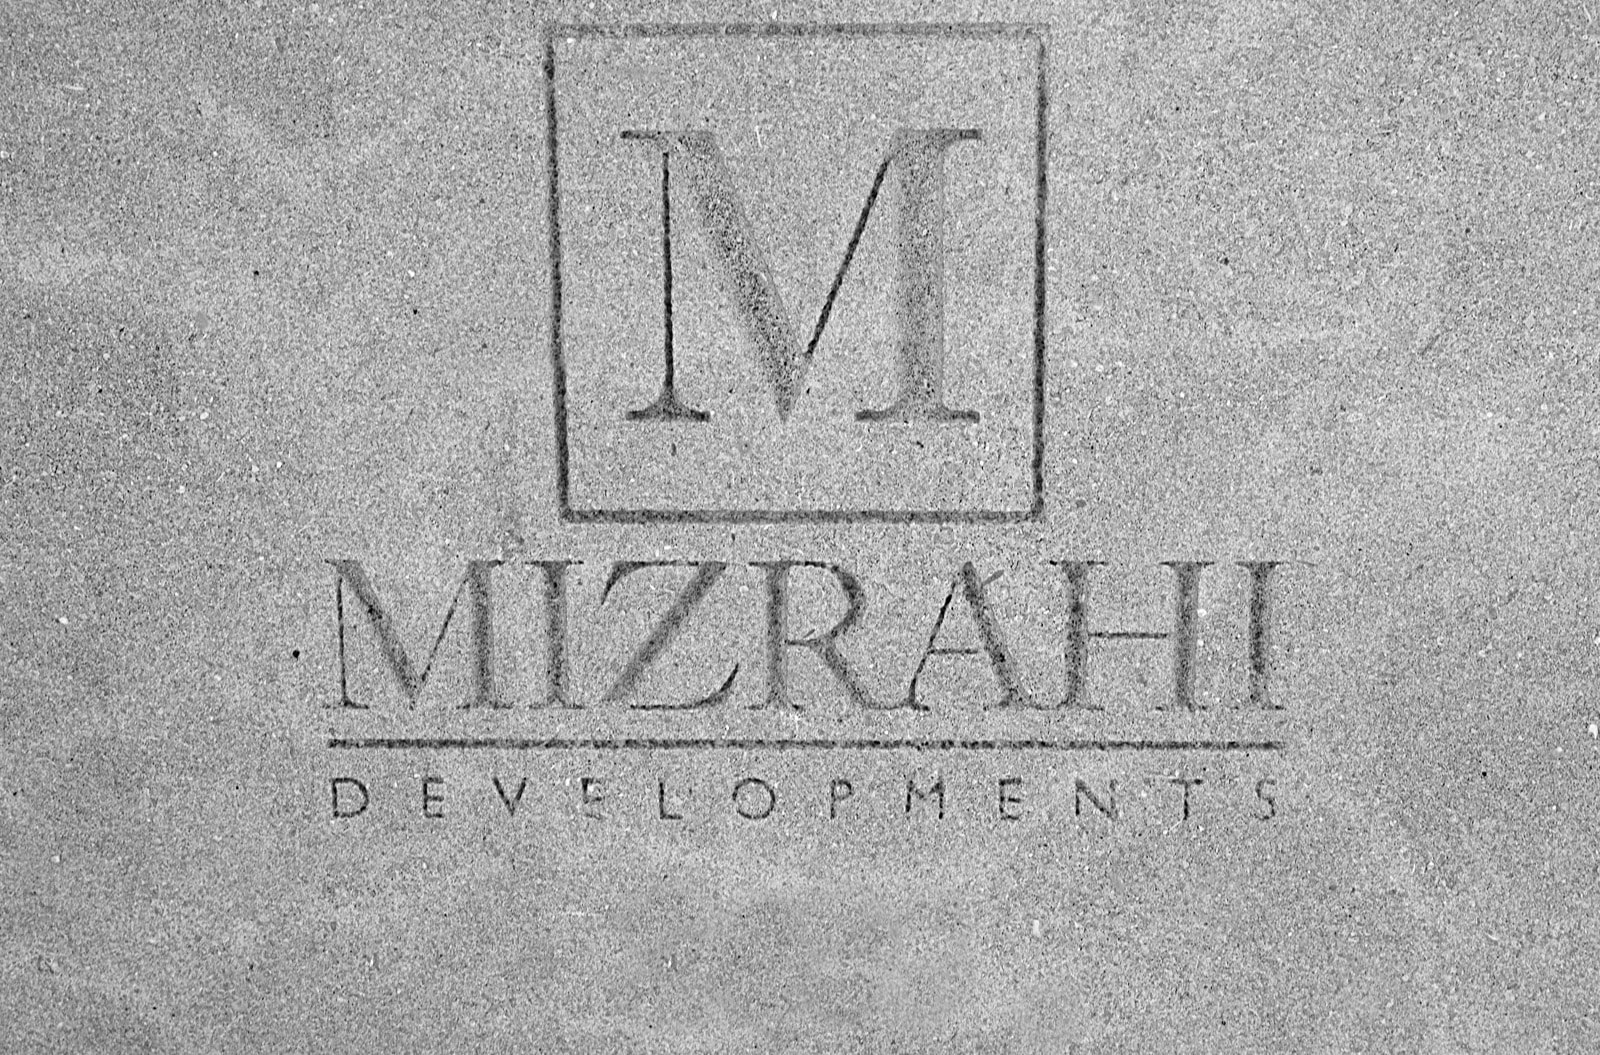 Mizrahi Developments